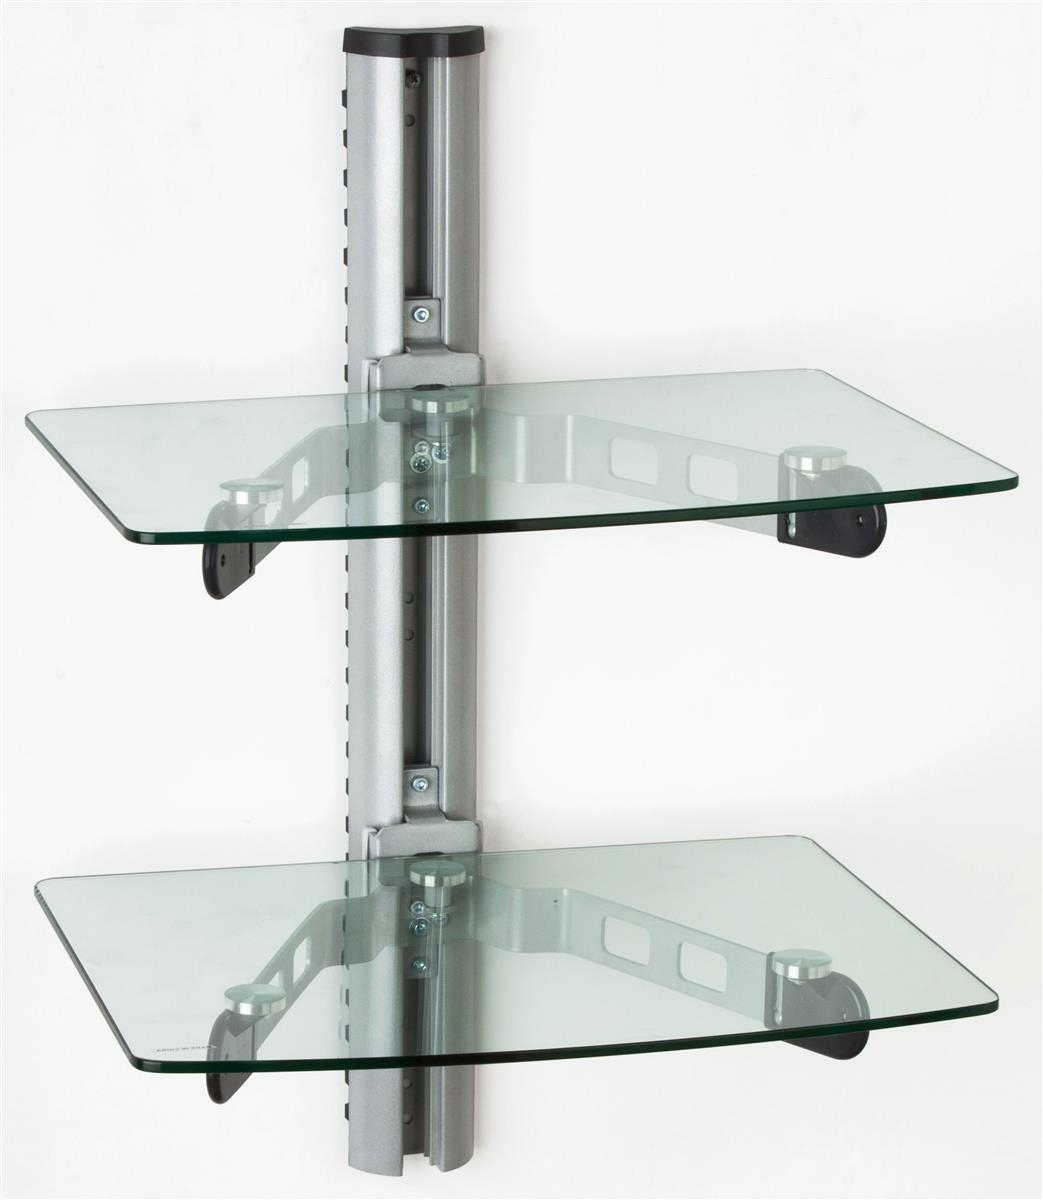 Wall Mounted Glass Shelves Av Component Stand Intended For Wall Mounted Glass Shelf (#6 of 12)